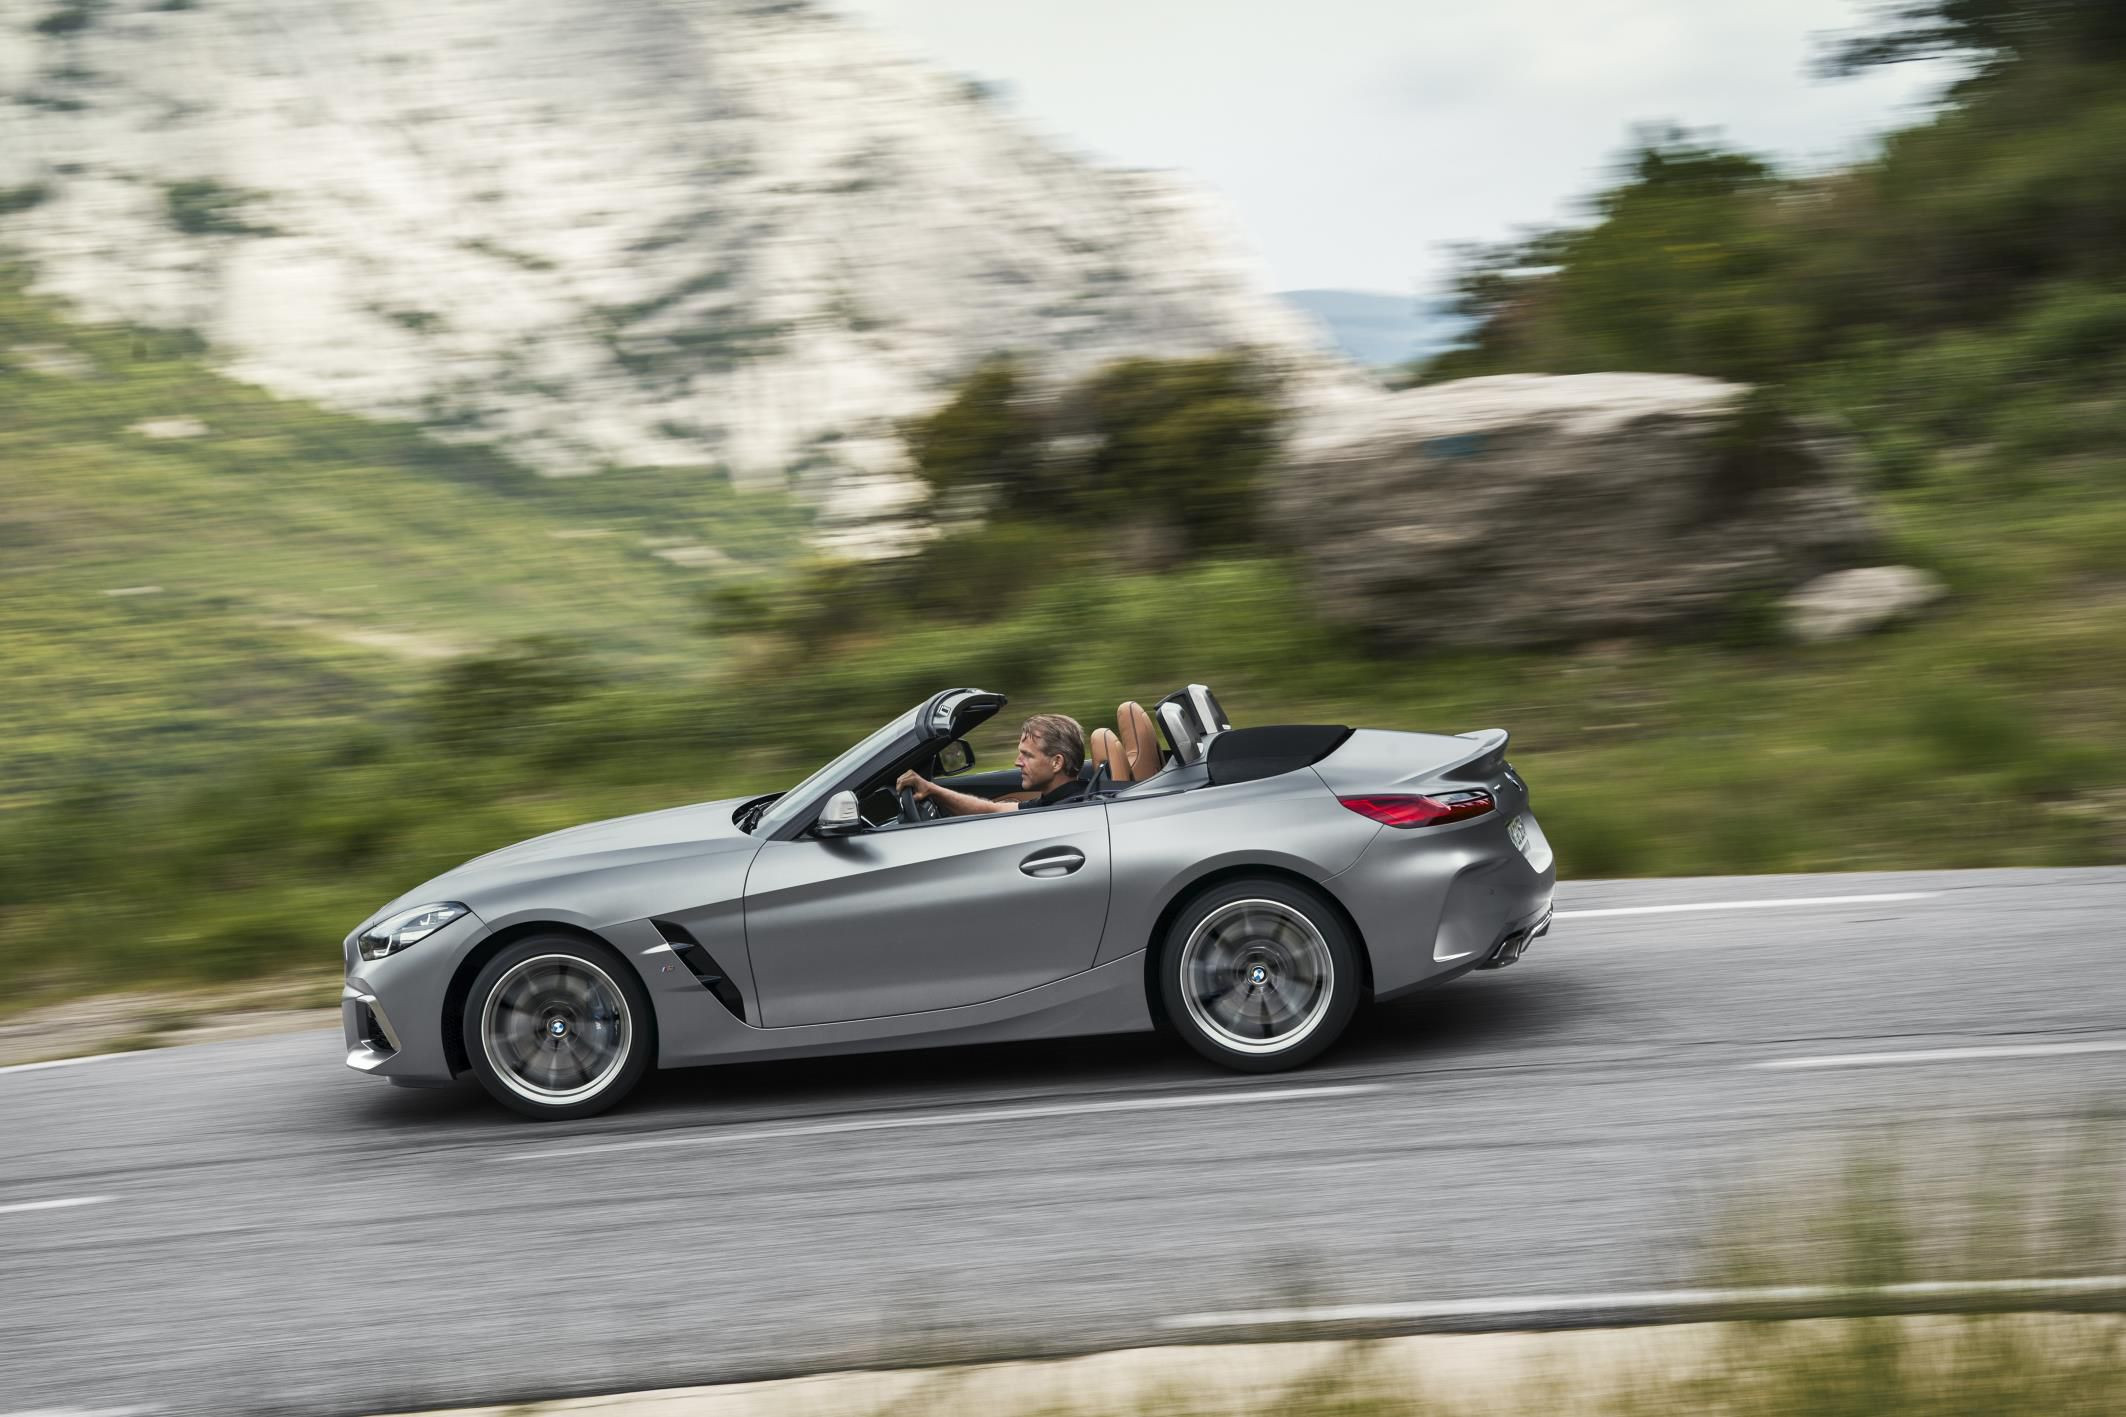 New silver BMW Z$ in rugged countryside